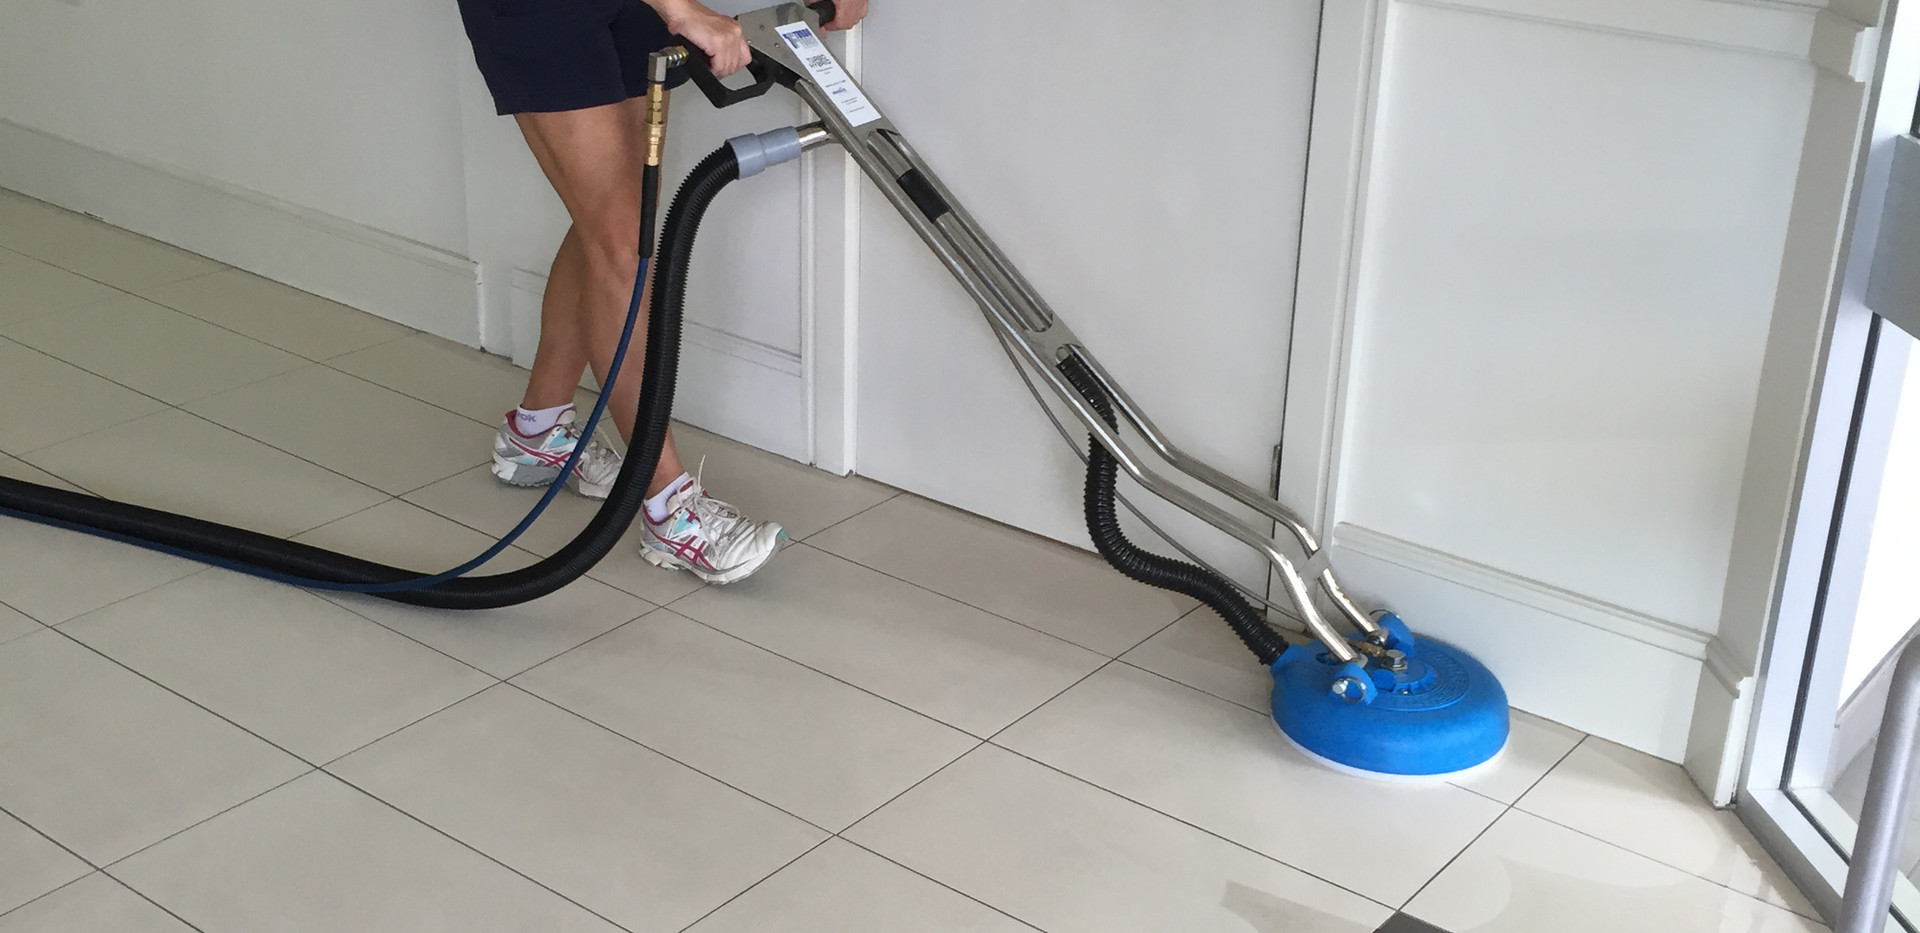 Steam Cleaning Tiles